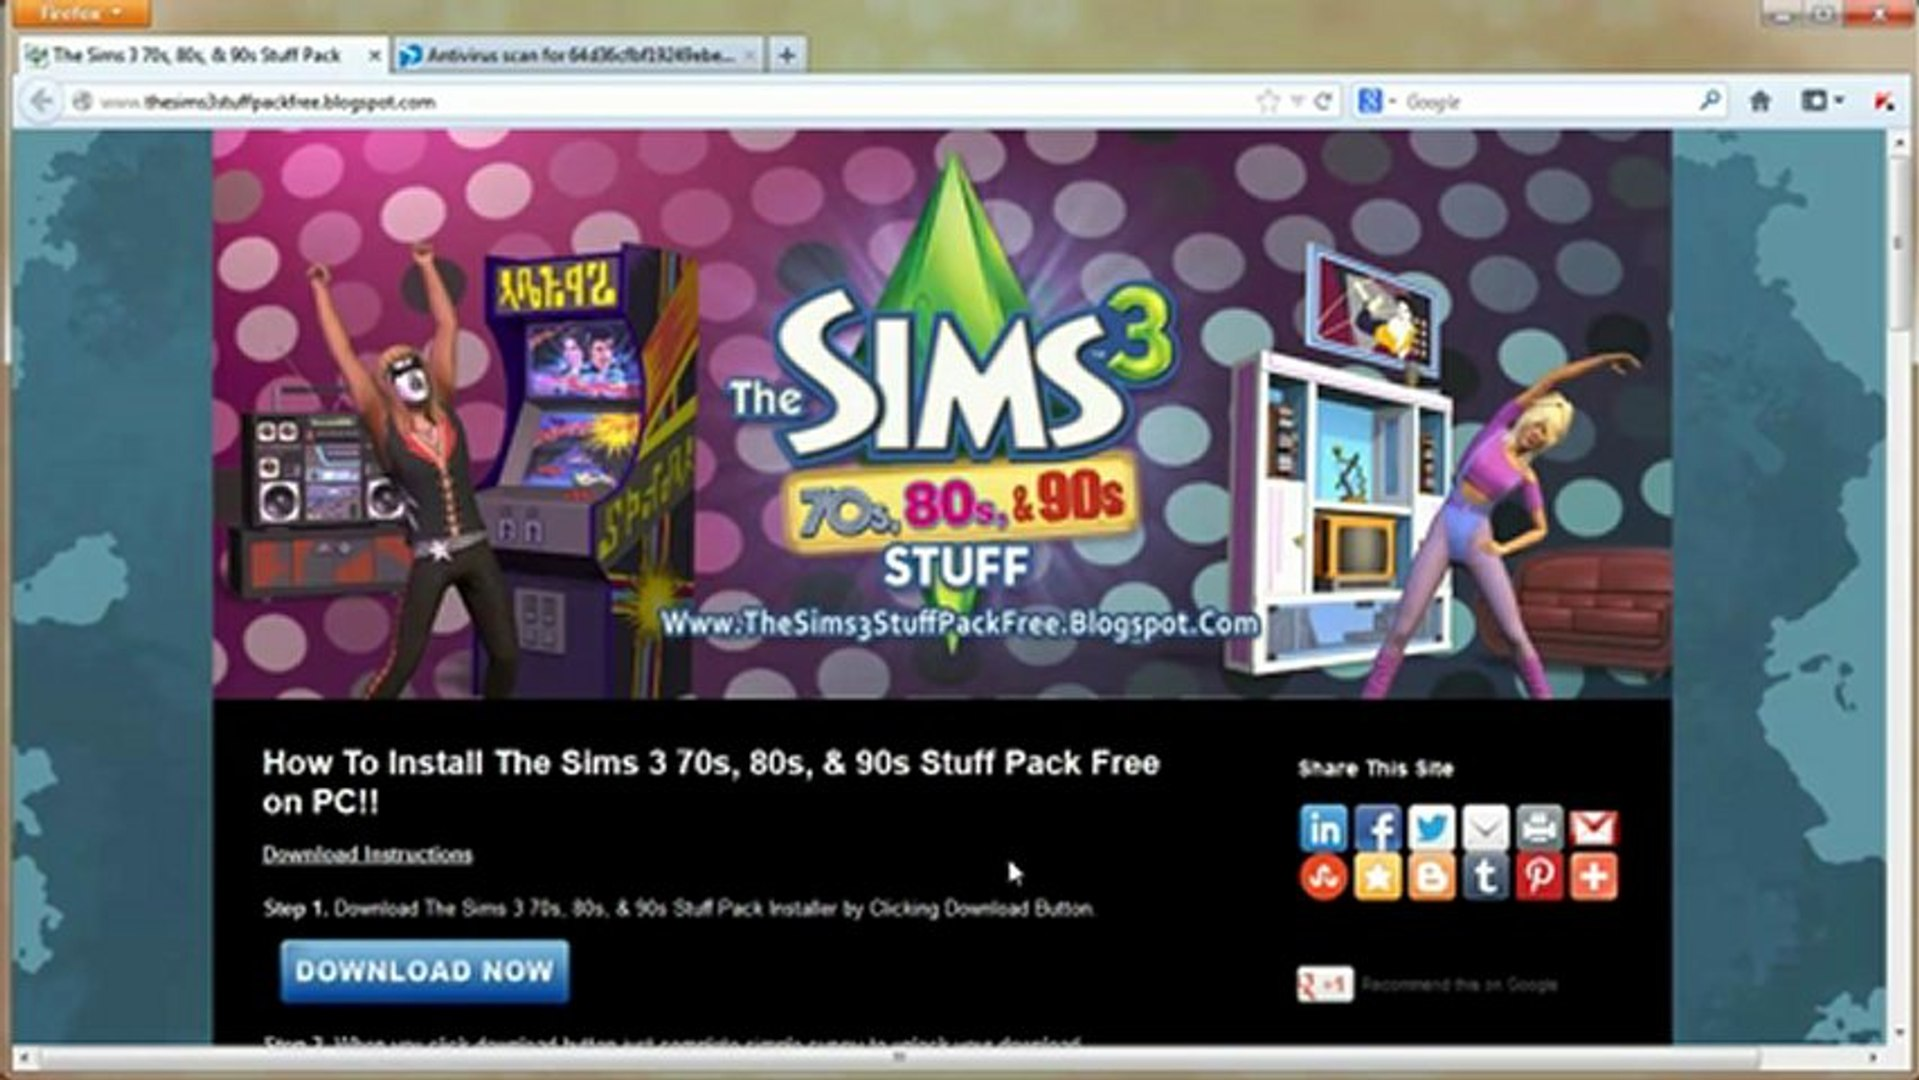 Download The Sims 3 70s, 80s, & 90s Stuff Pack Installer Free on PC